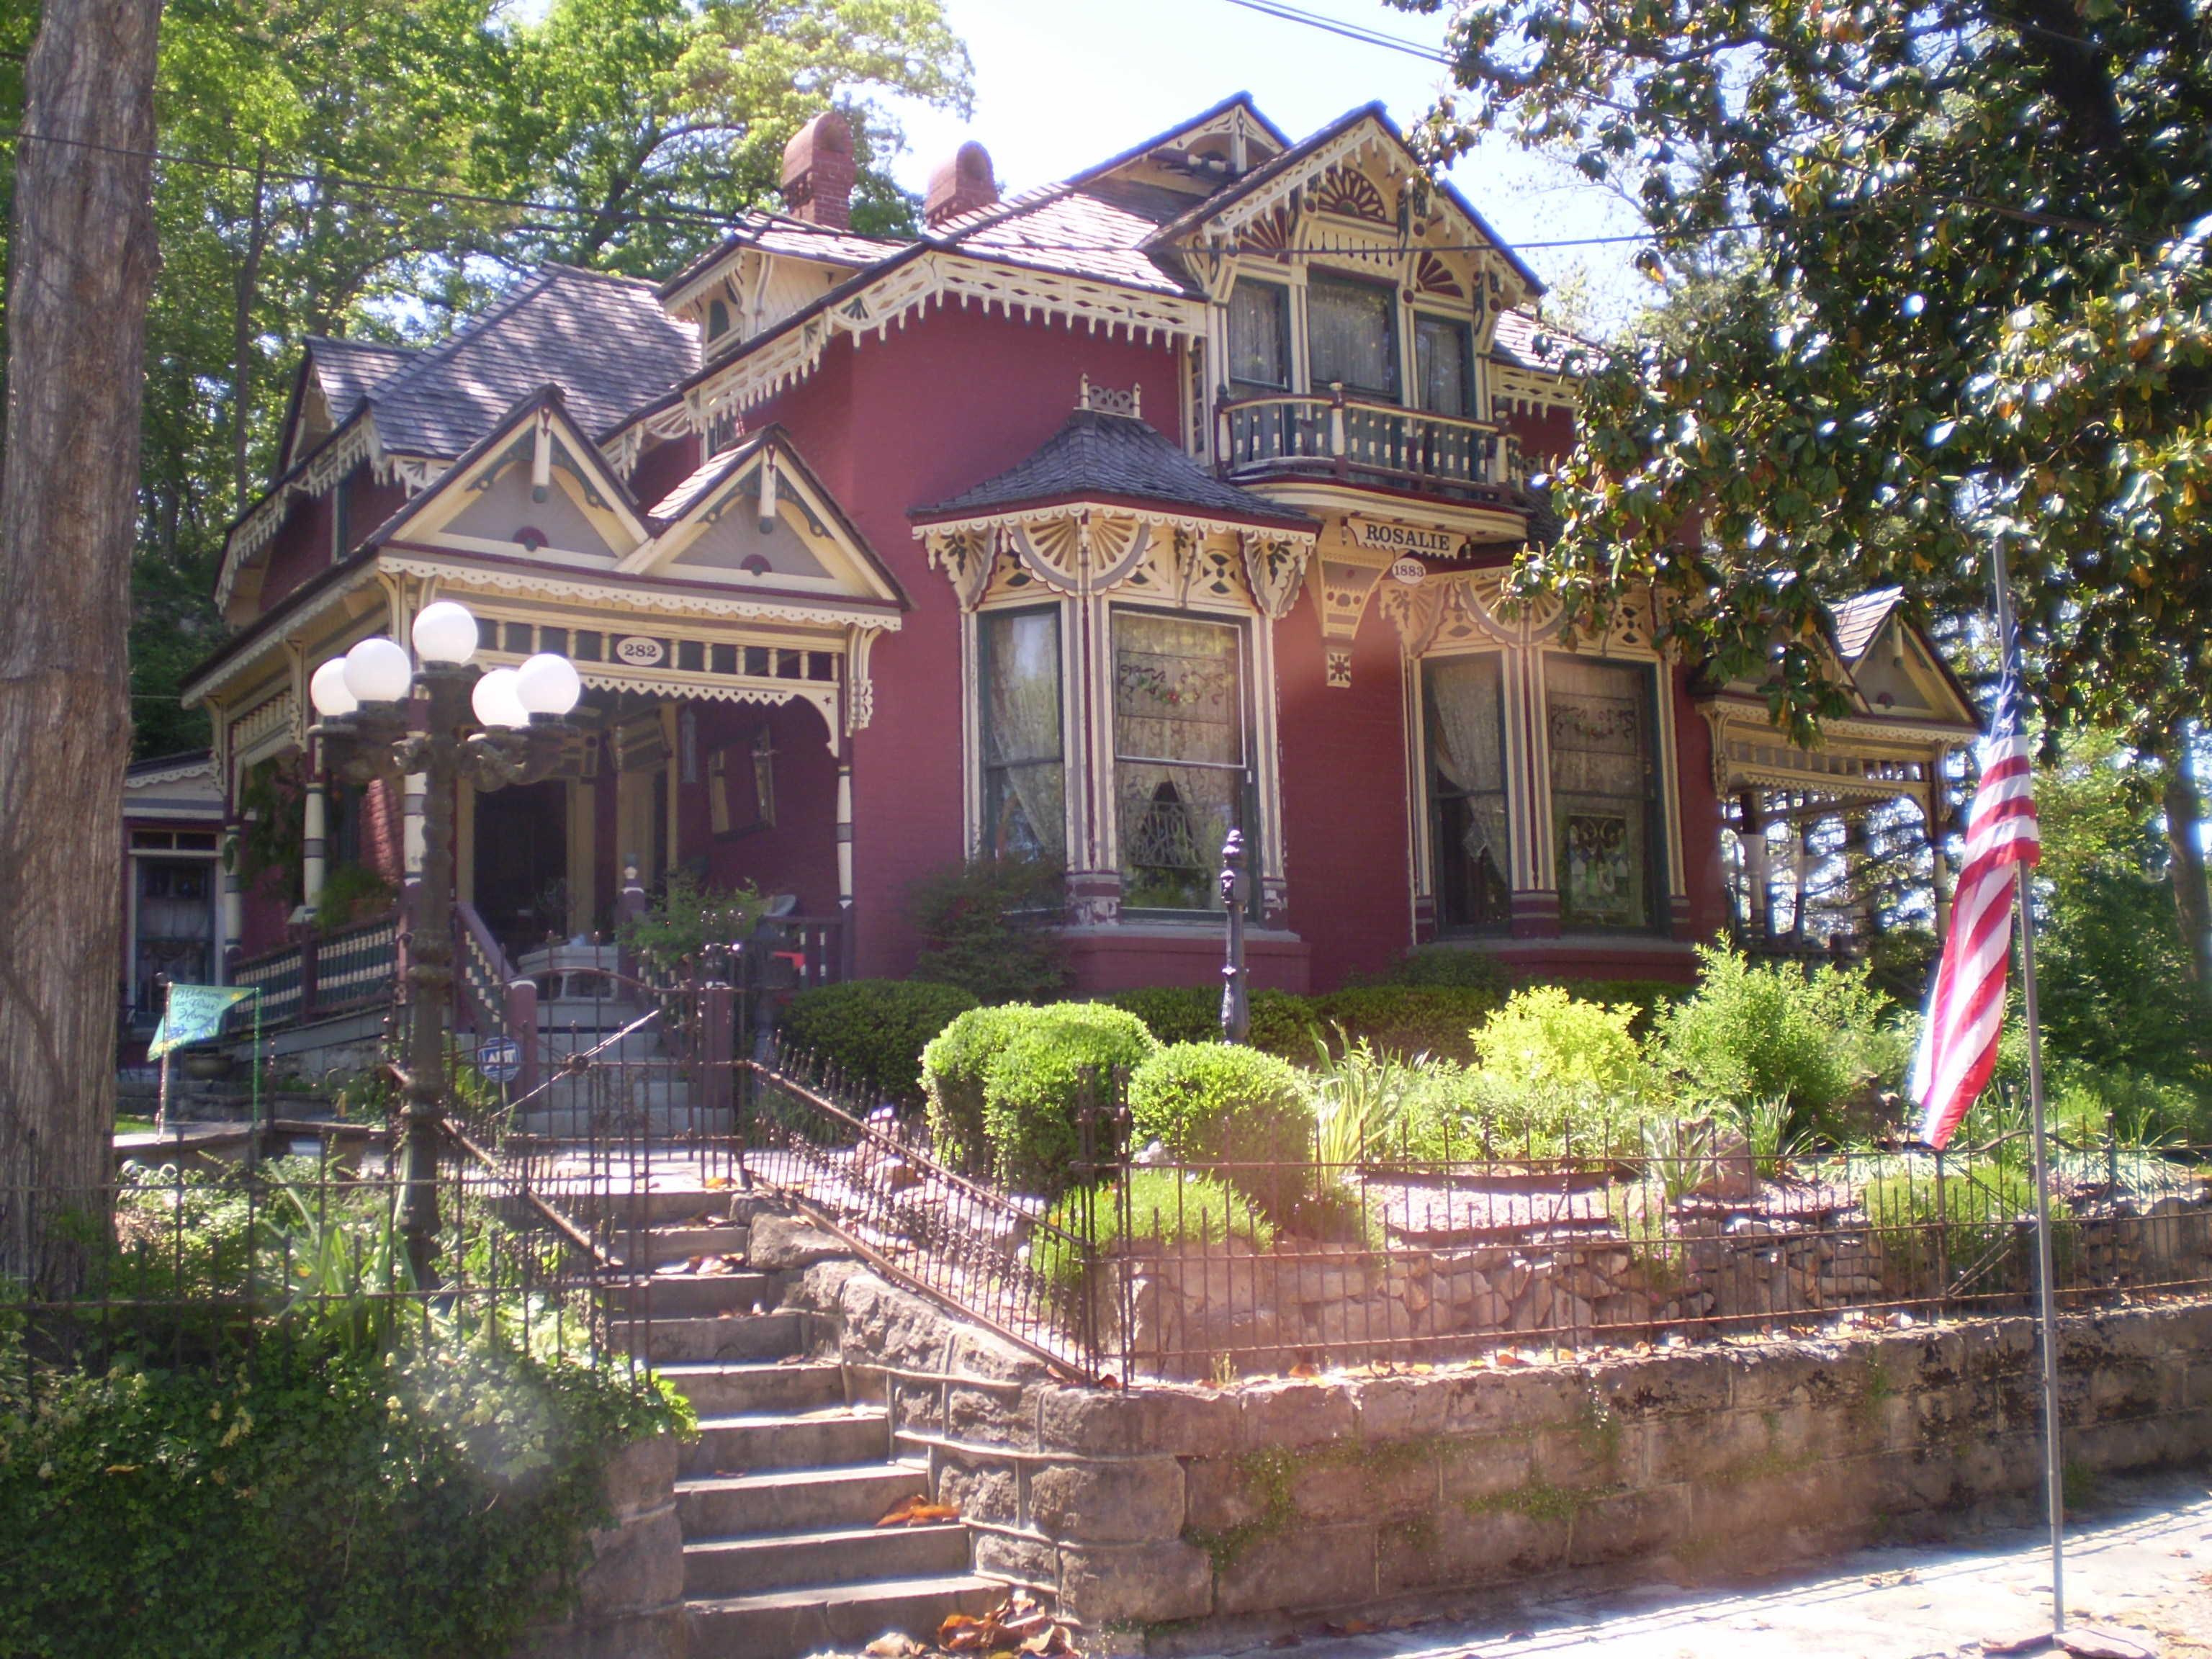 ct treehouses caves places lifestyles from trav to cottages travel sc cottage quirky stay story eureka chicago hotels springs odd tribune